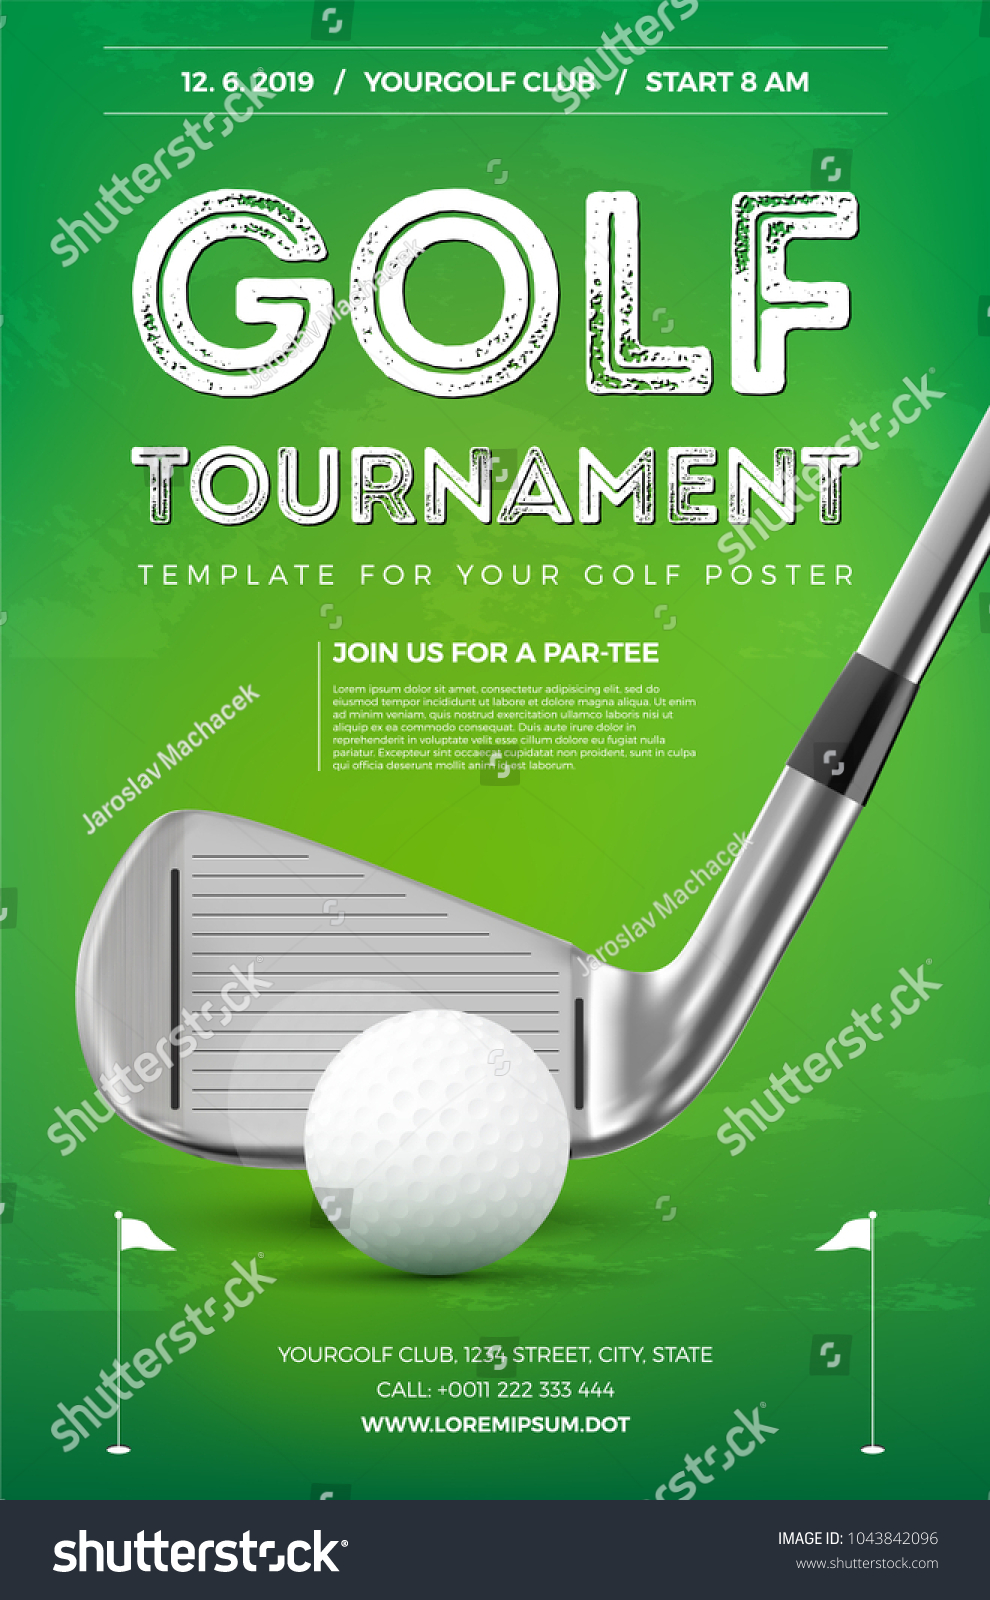 Golf tournament poster template with sample text in separate layer- vector illustration